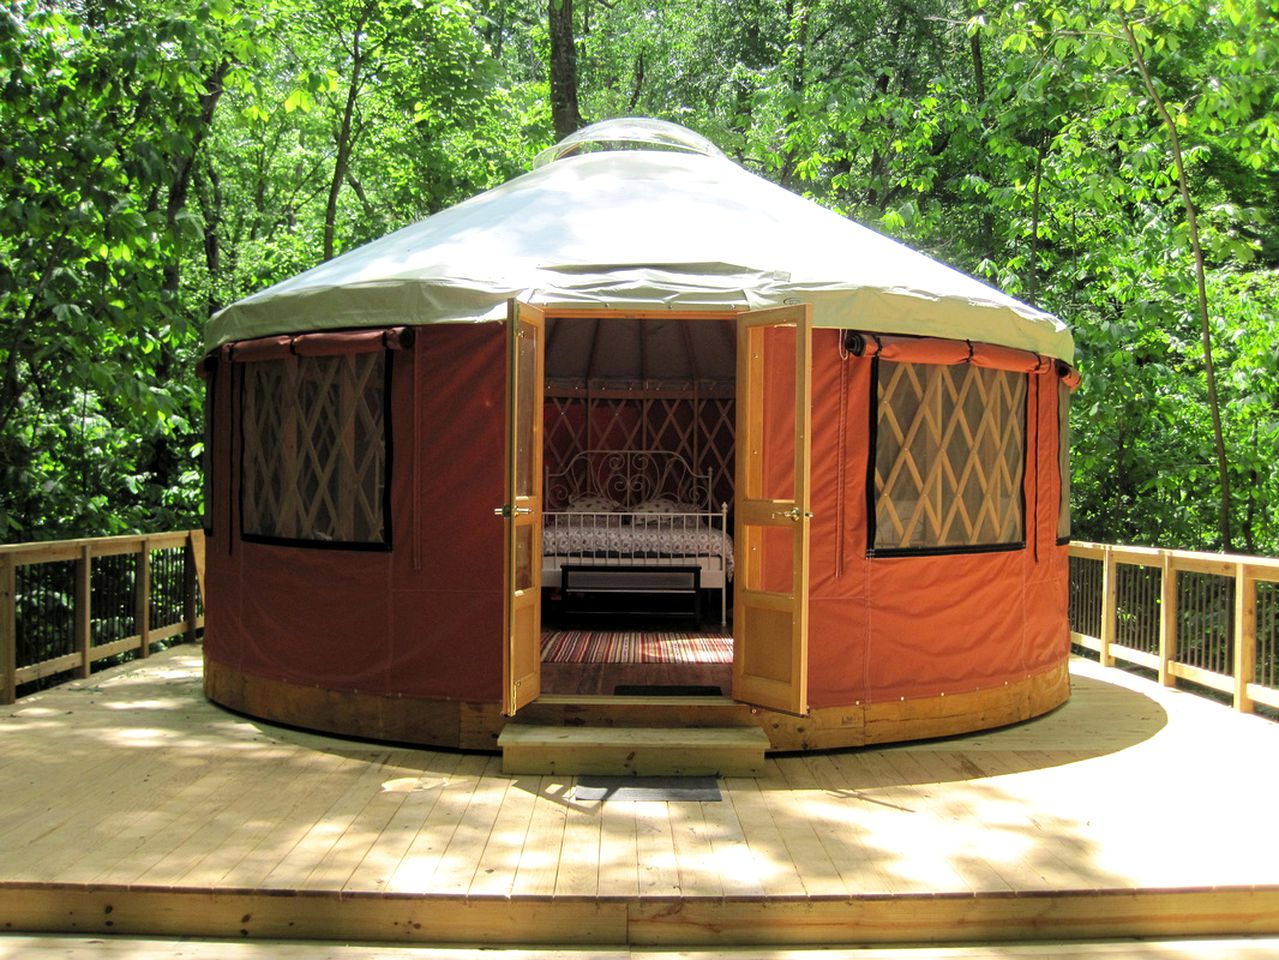 Stay in a yurt! Virginia glamping accommodations